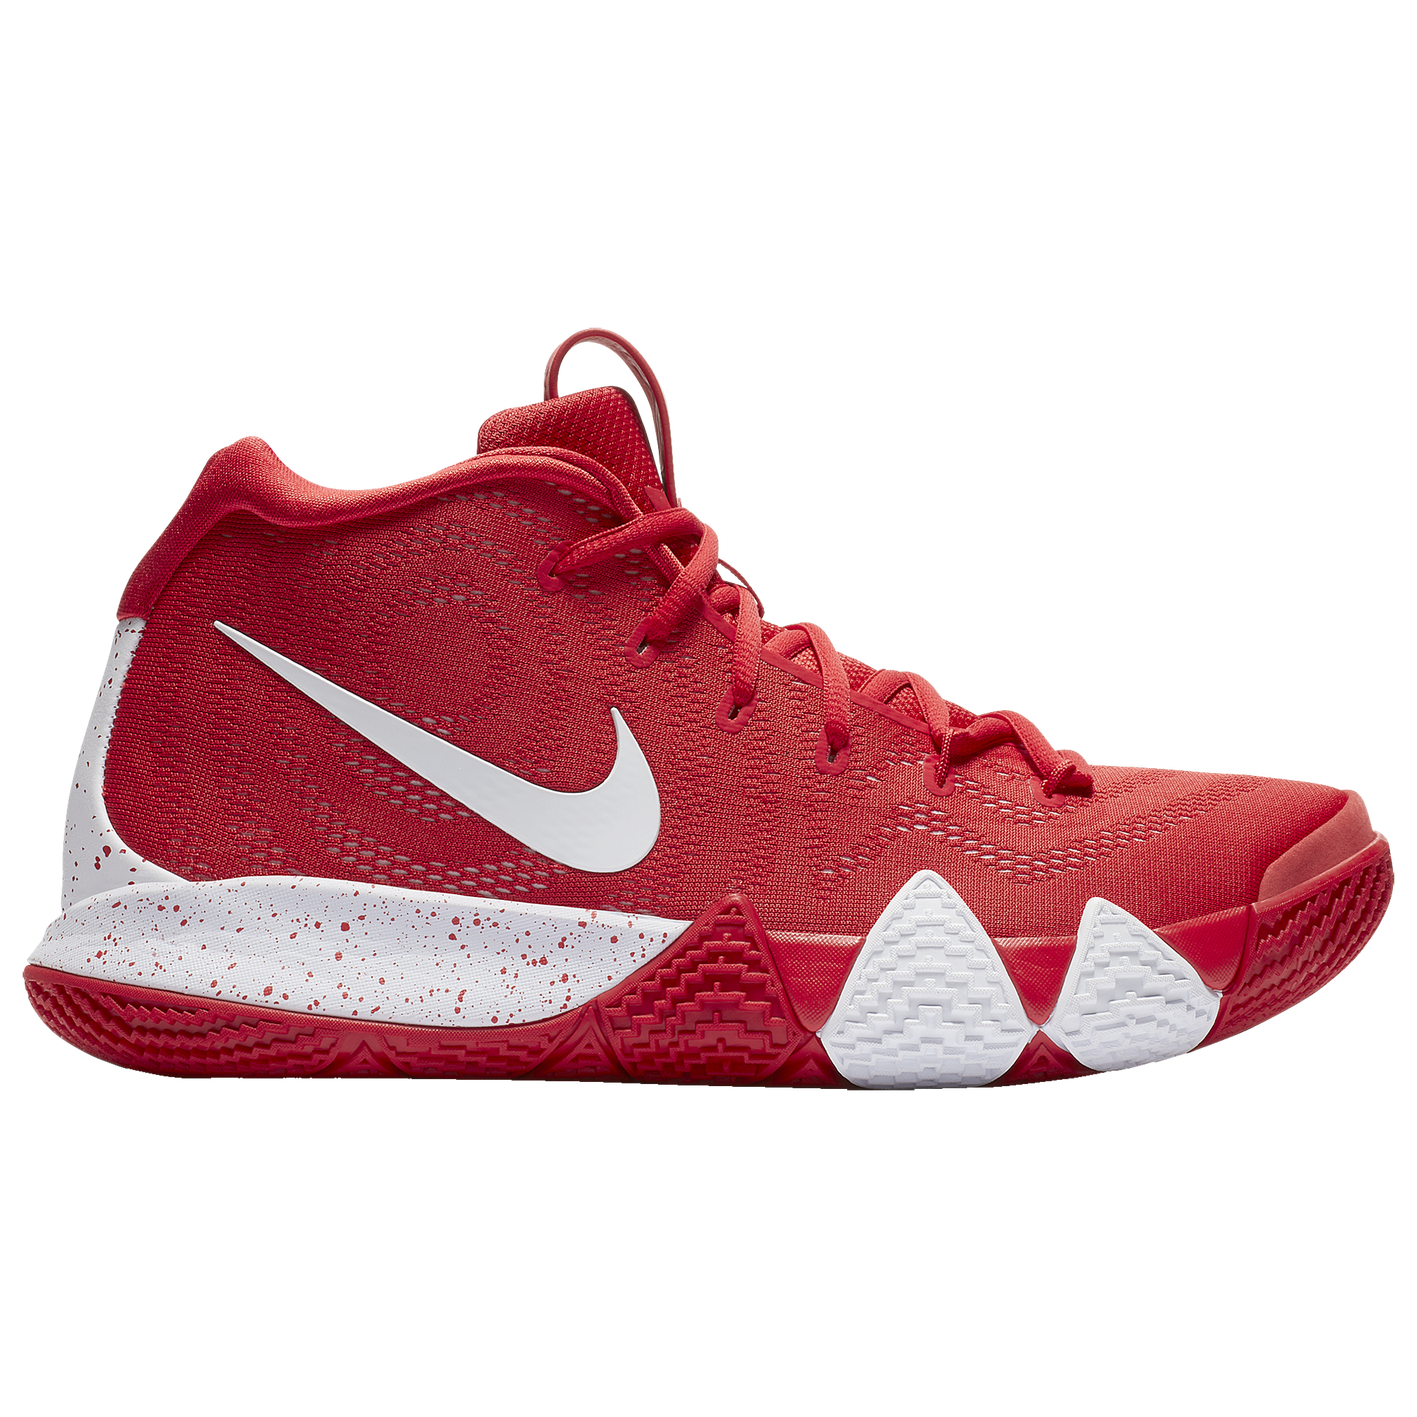 8b0a029cf049 Nike Kyrie 4 - Men s - Basketball - Shoes - Irving